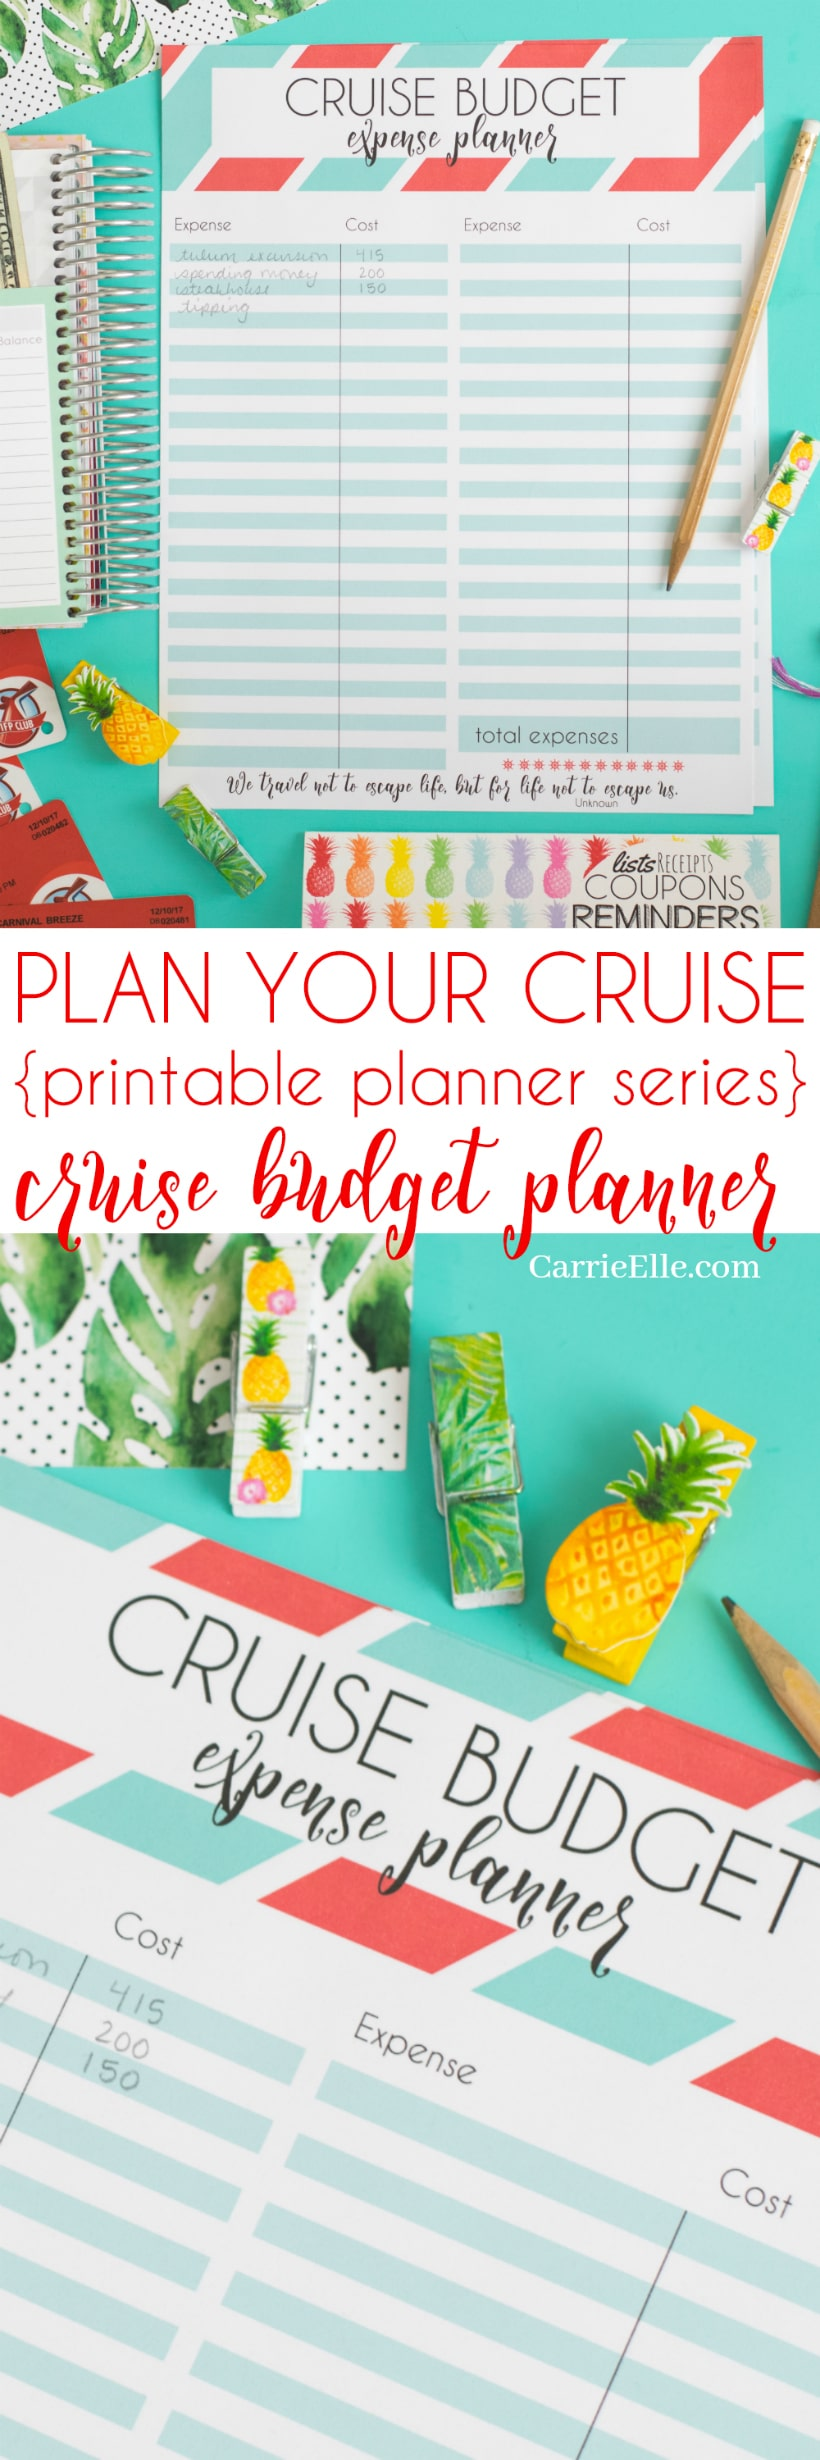 Cruise Budget Planner